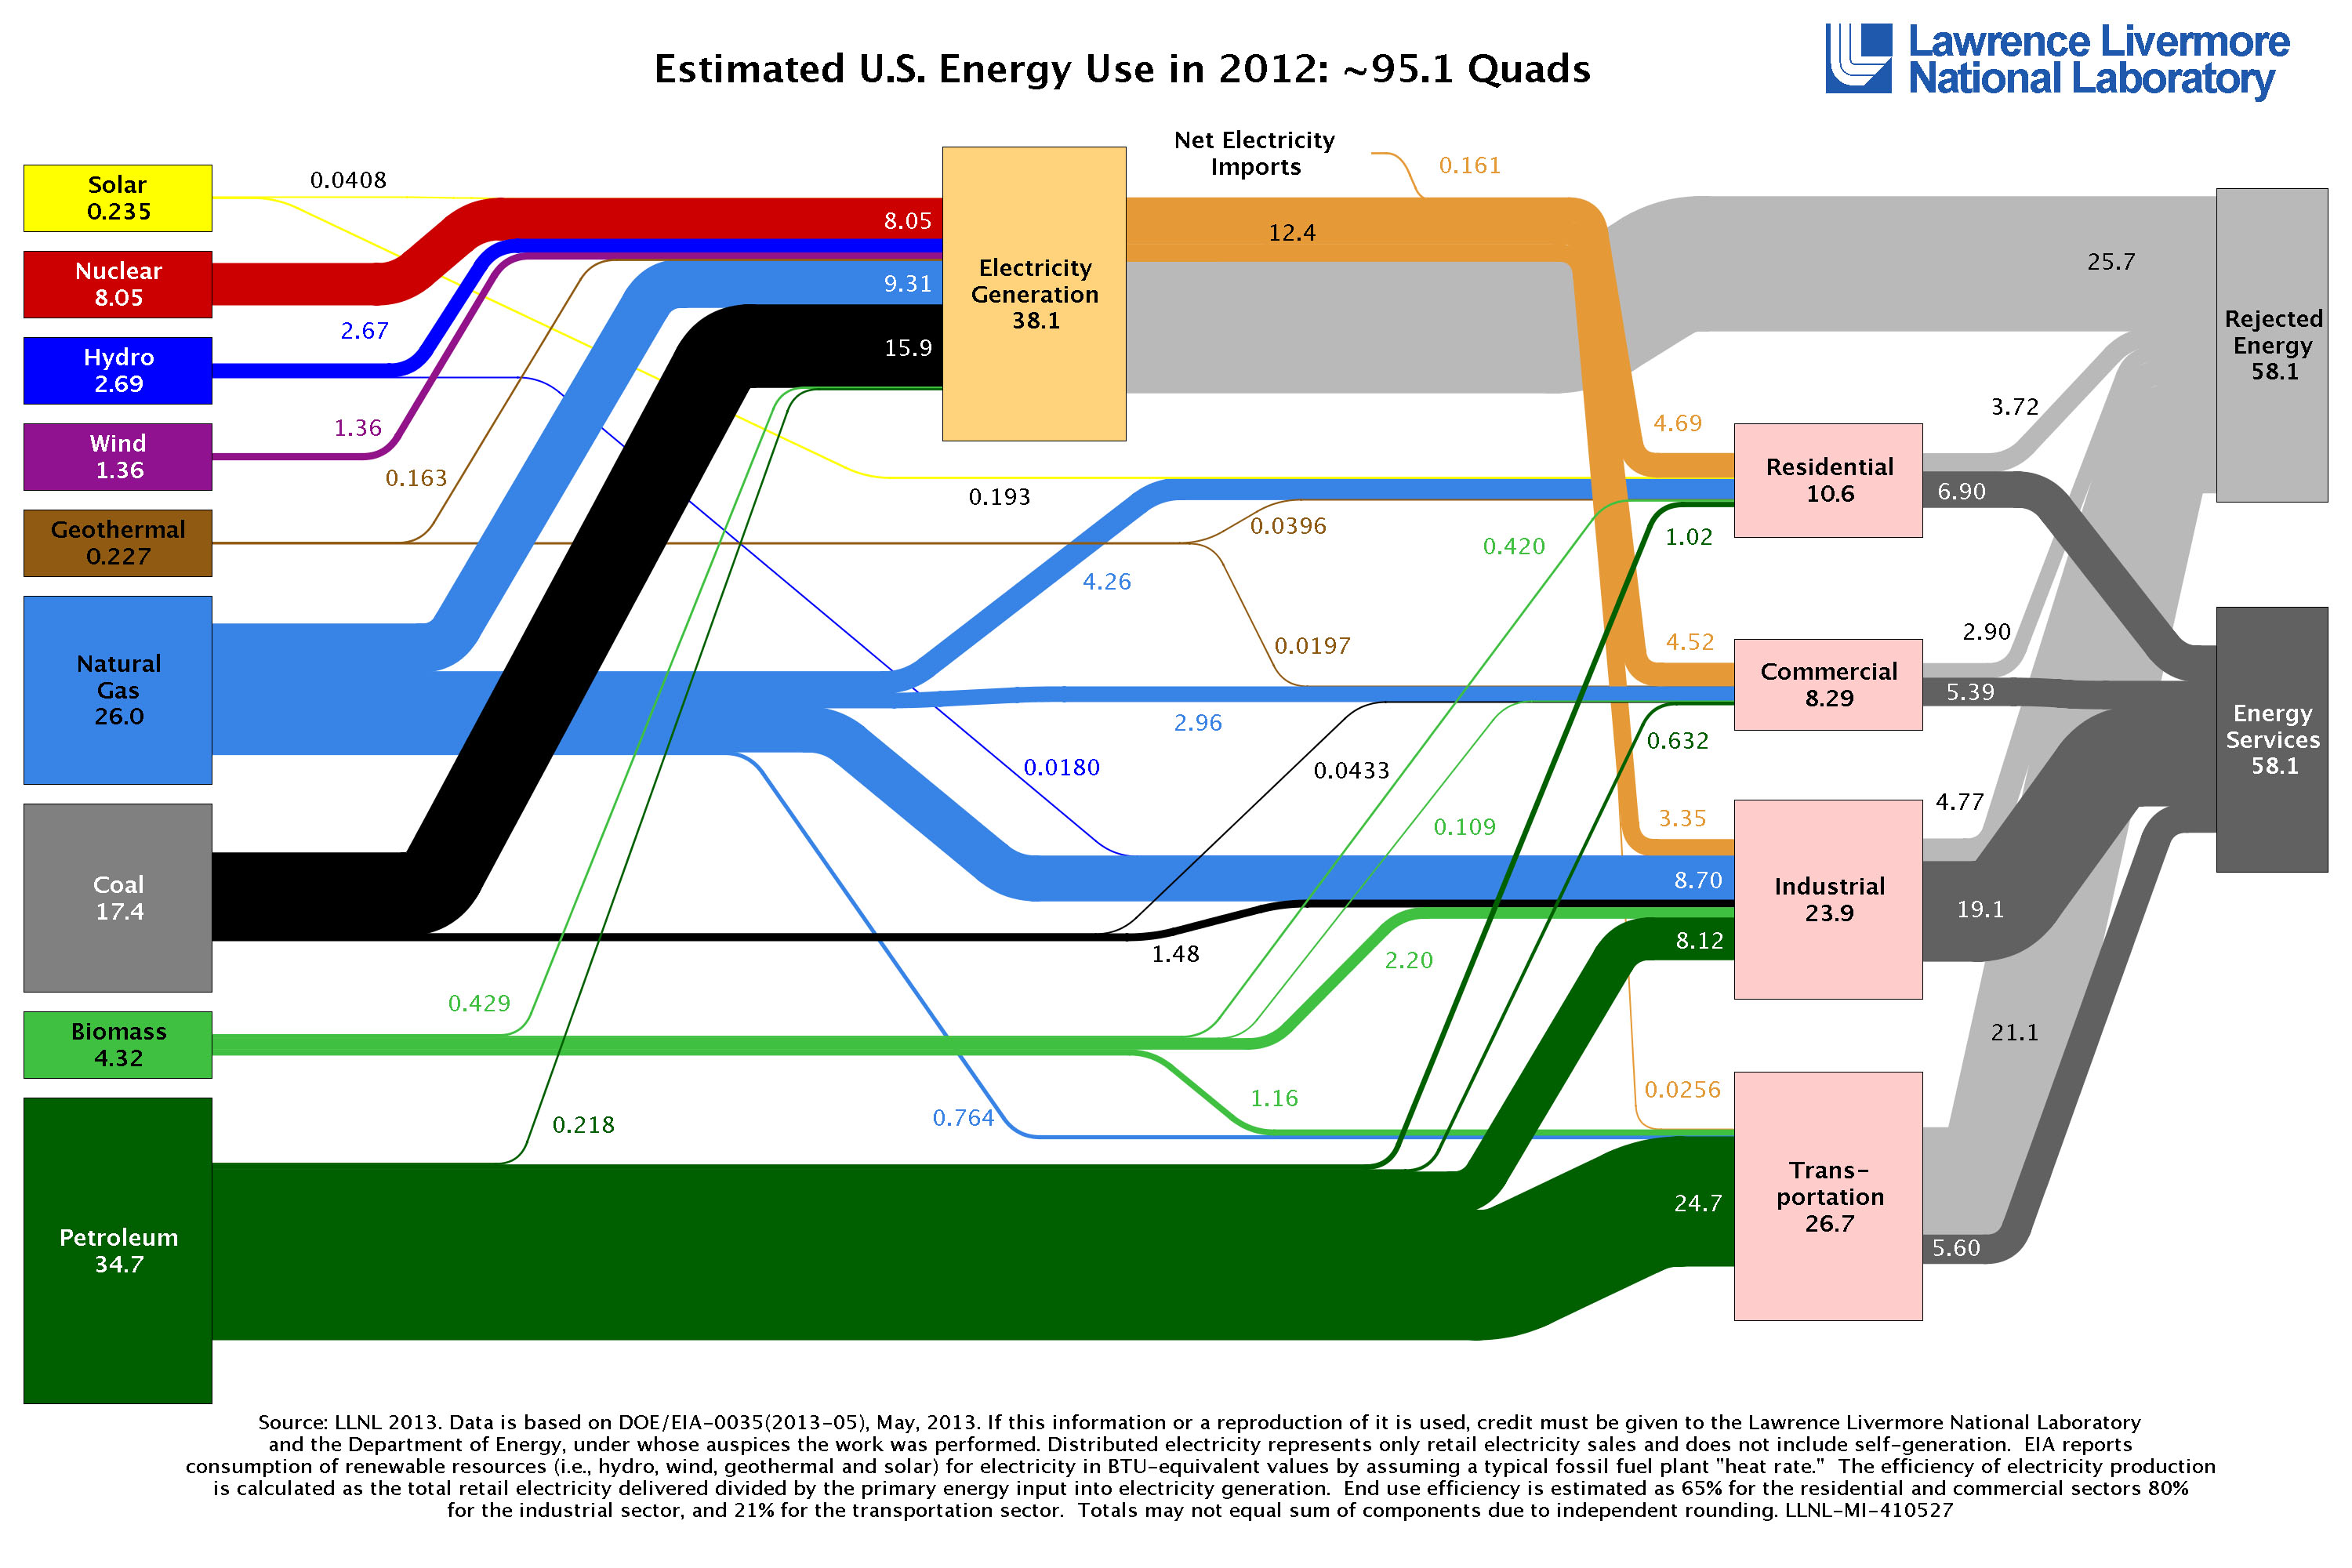 Us energy use dropped in 2012 as renewables natural gas rose ars enlarge geenschuldenfo Choice Image